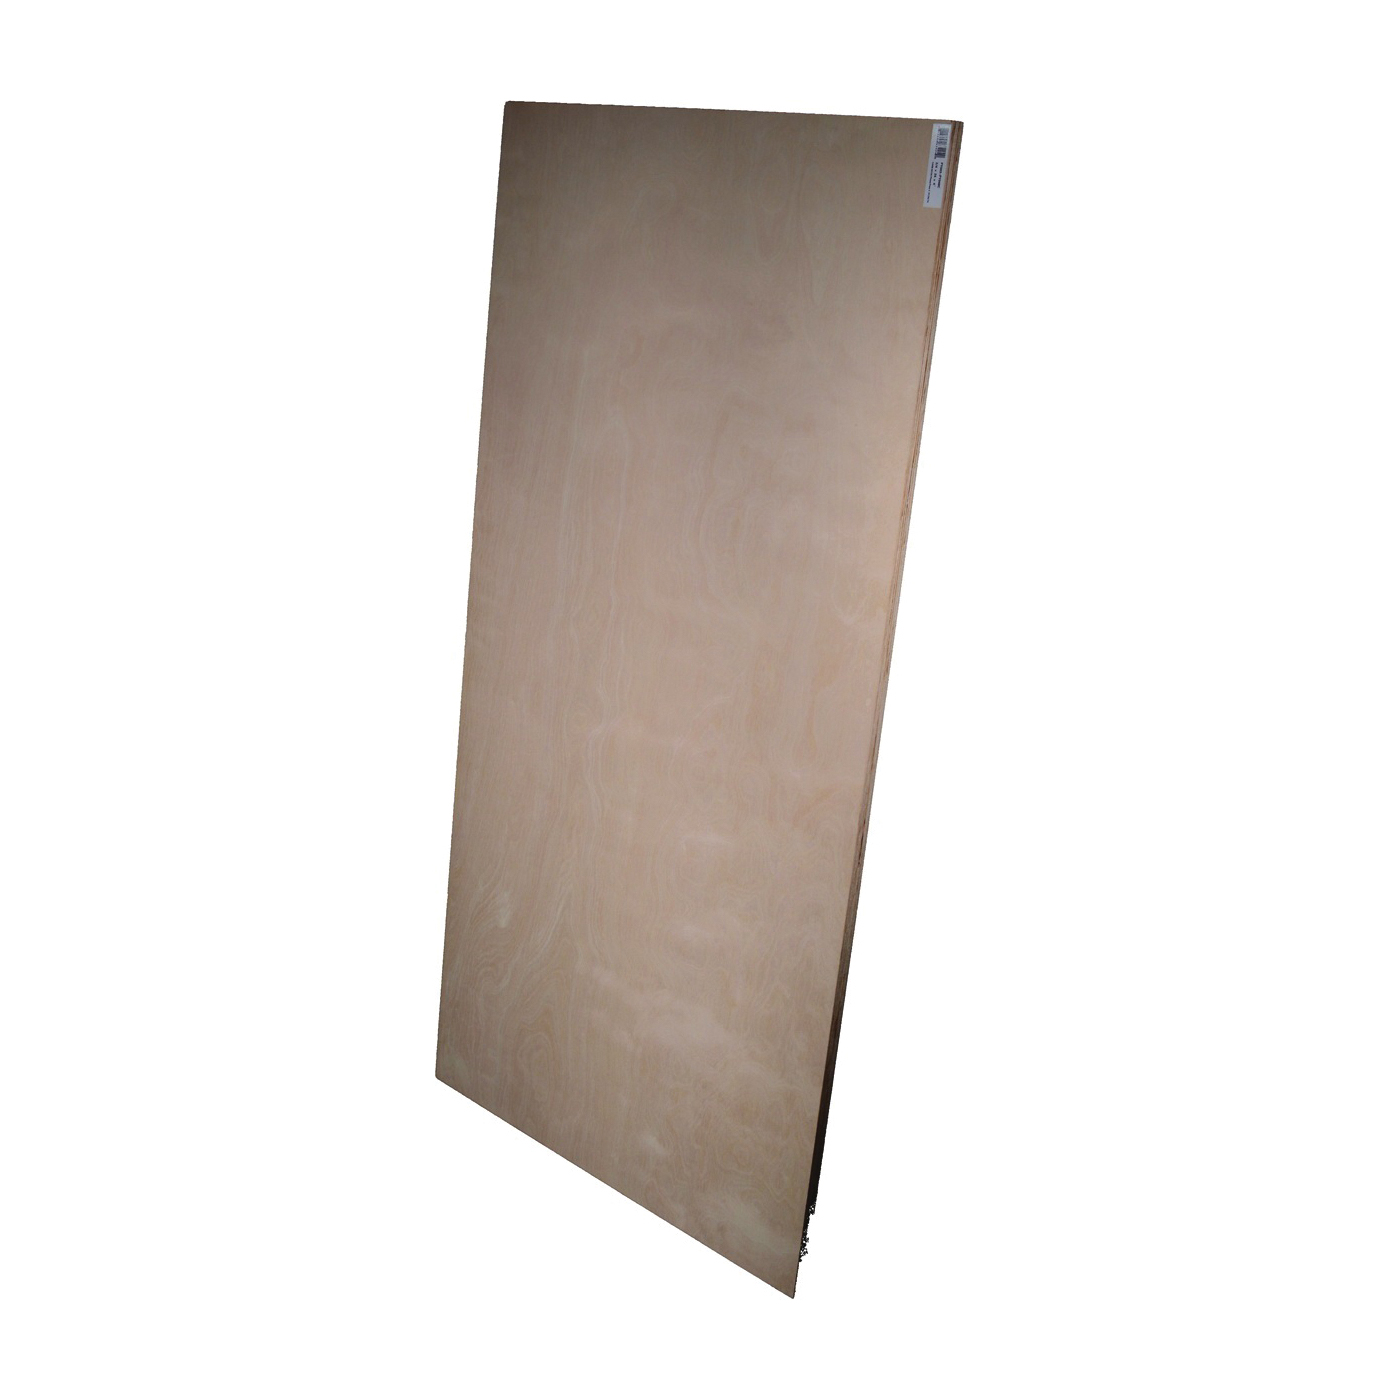 Picture of ALEXANDRIA Moulding PY003-PY048C Sanded Face Plywood